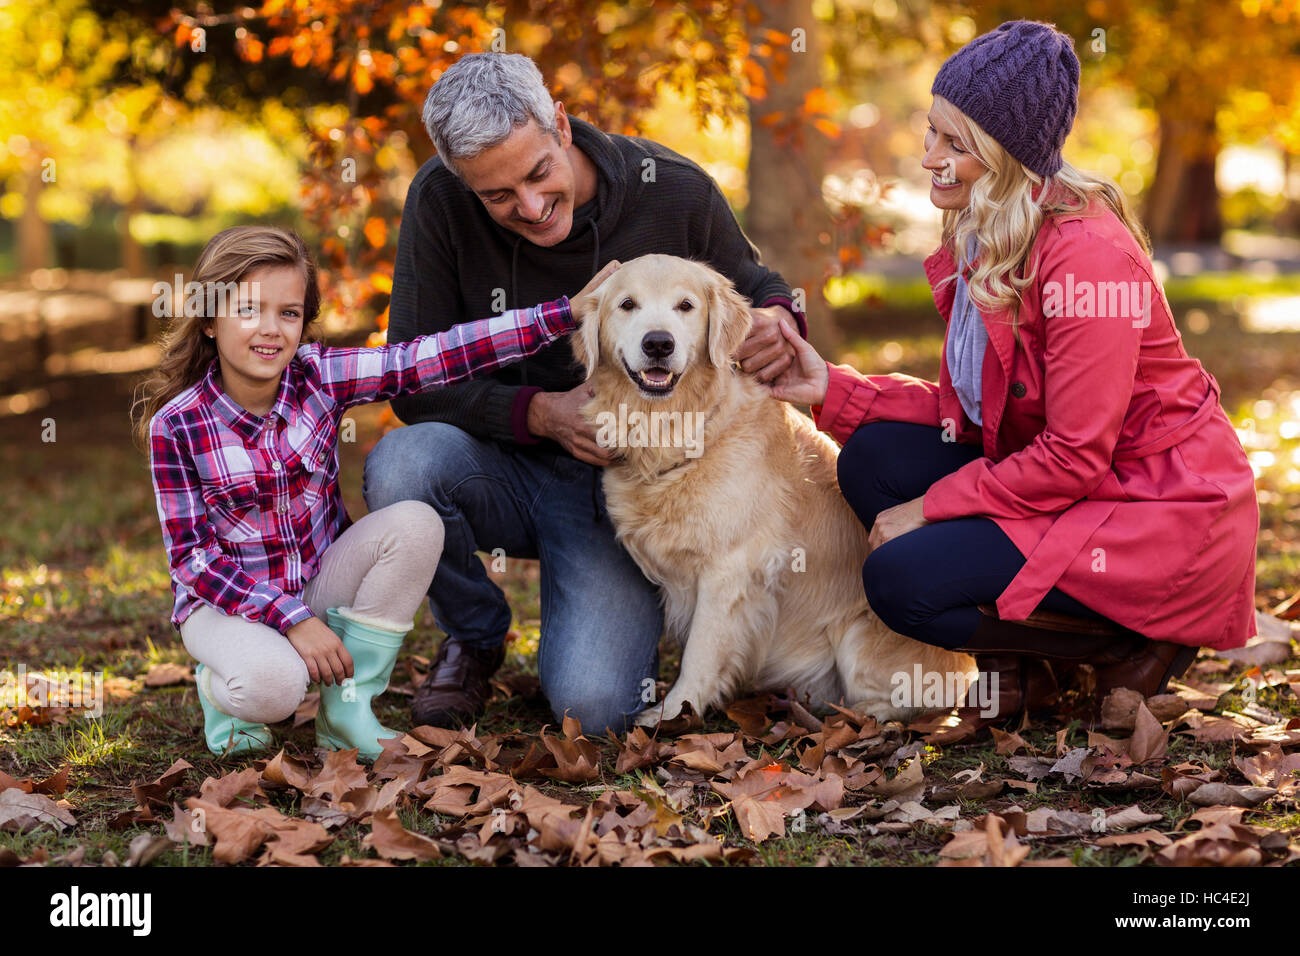 Smiling family with dog at park - Stock Image